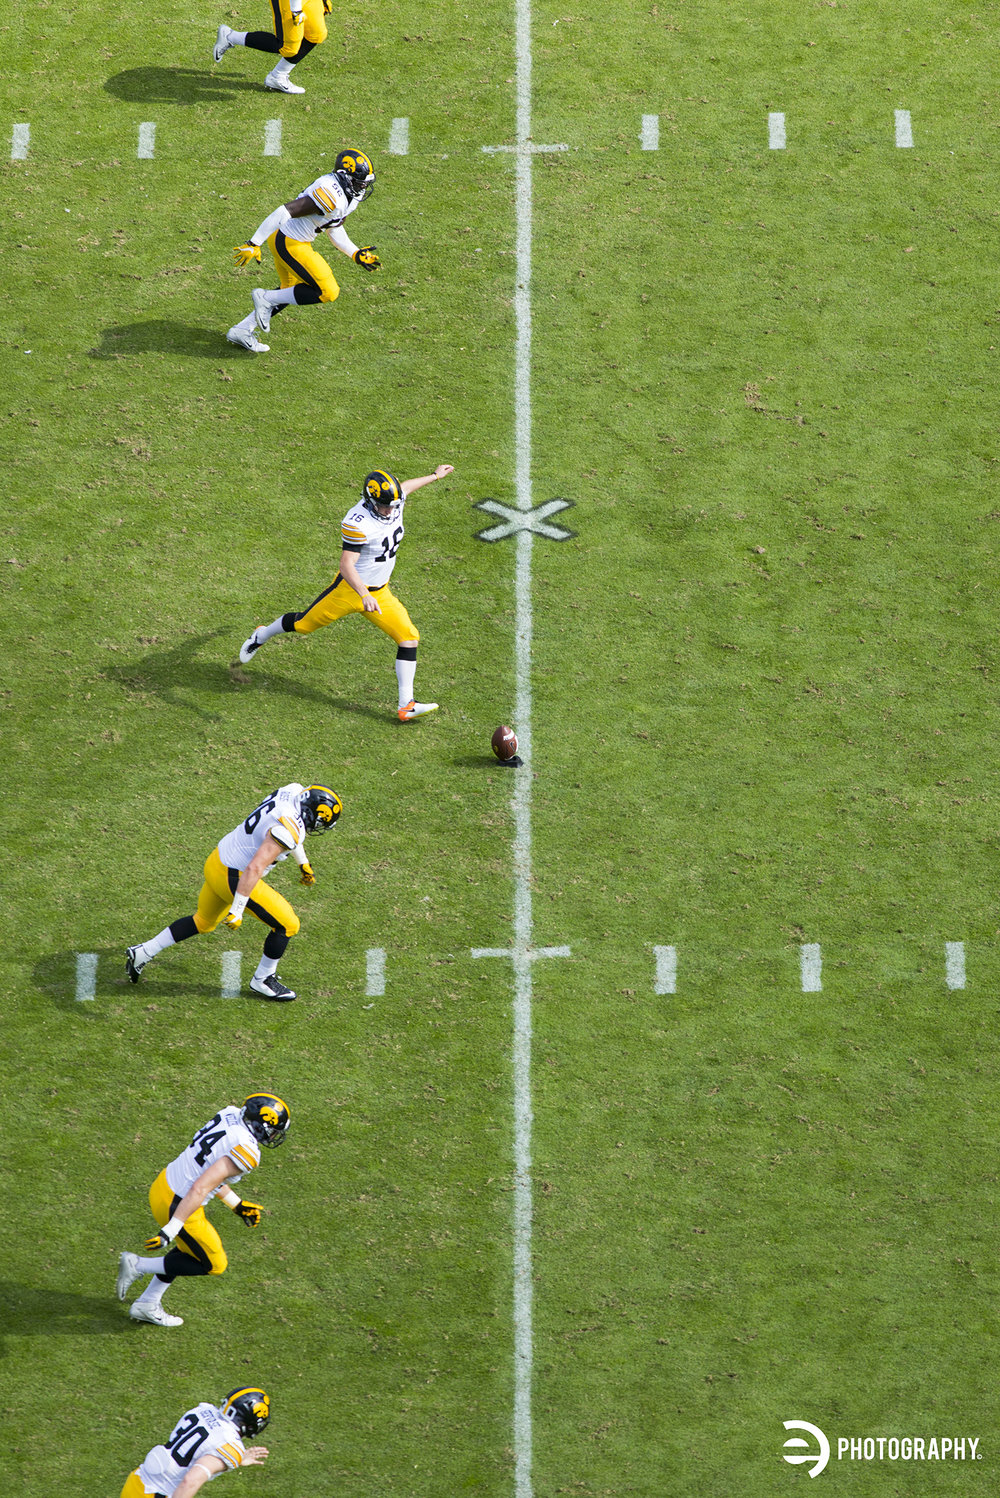 Kickoff after another Hawkeye touchdown!